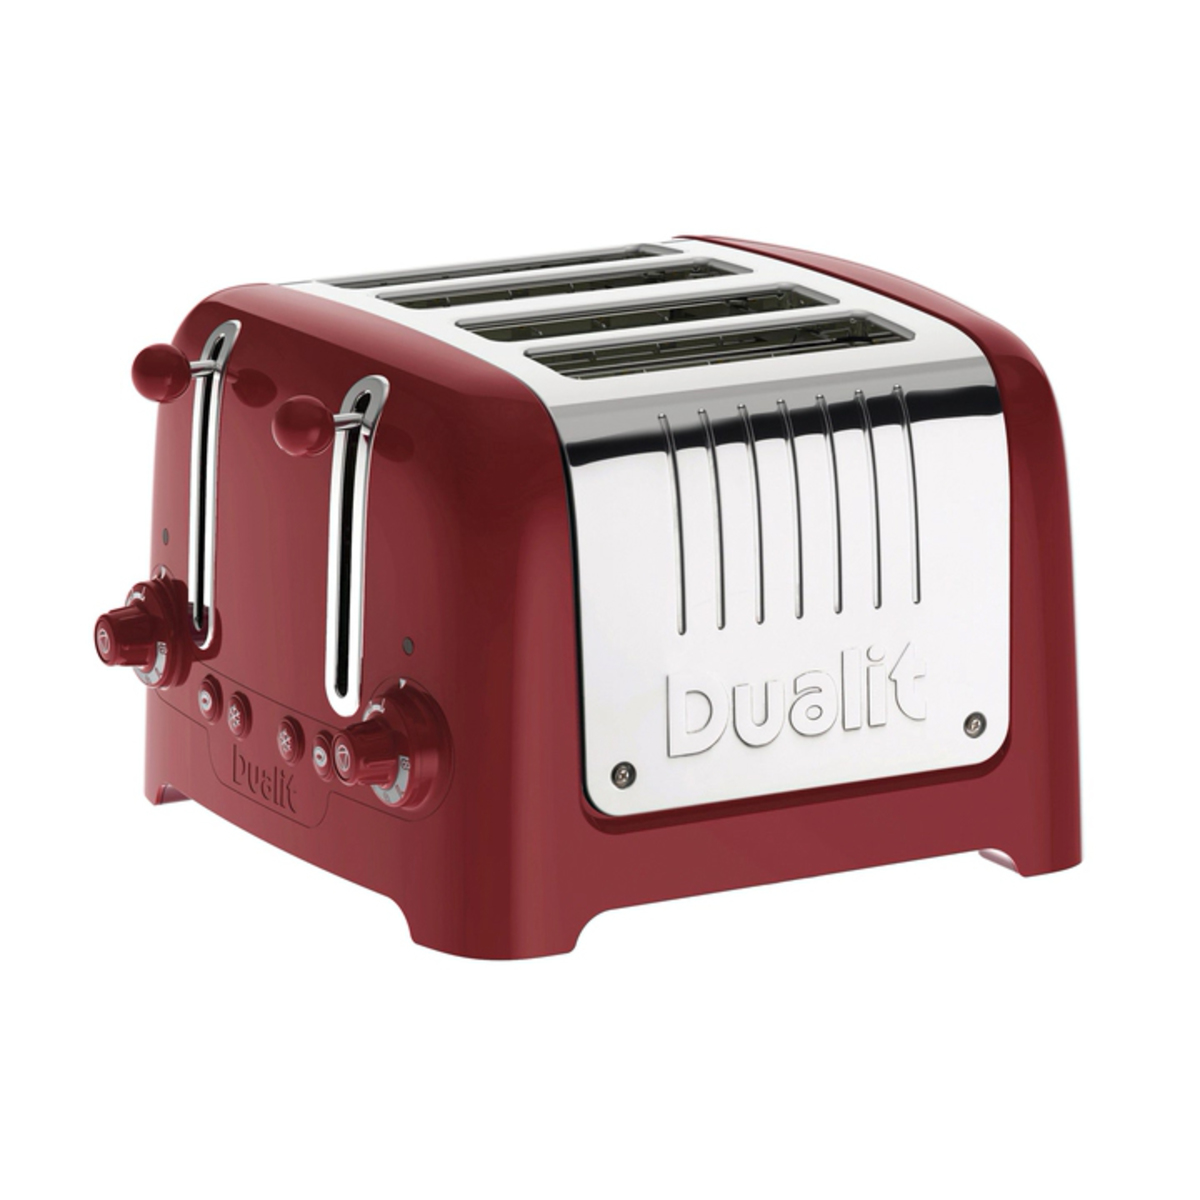 Dualit 46201 4 Slot Lite Toaster, Gloss Red